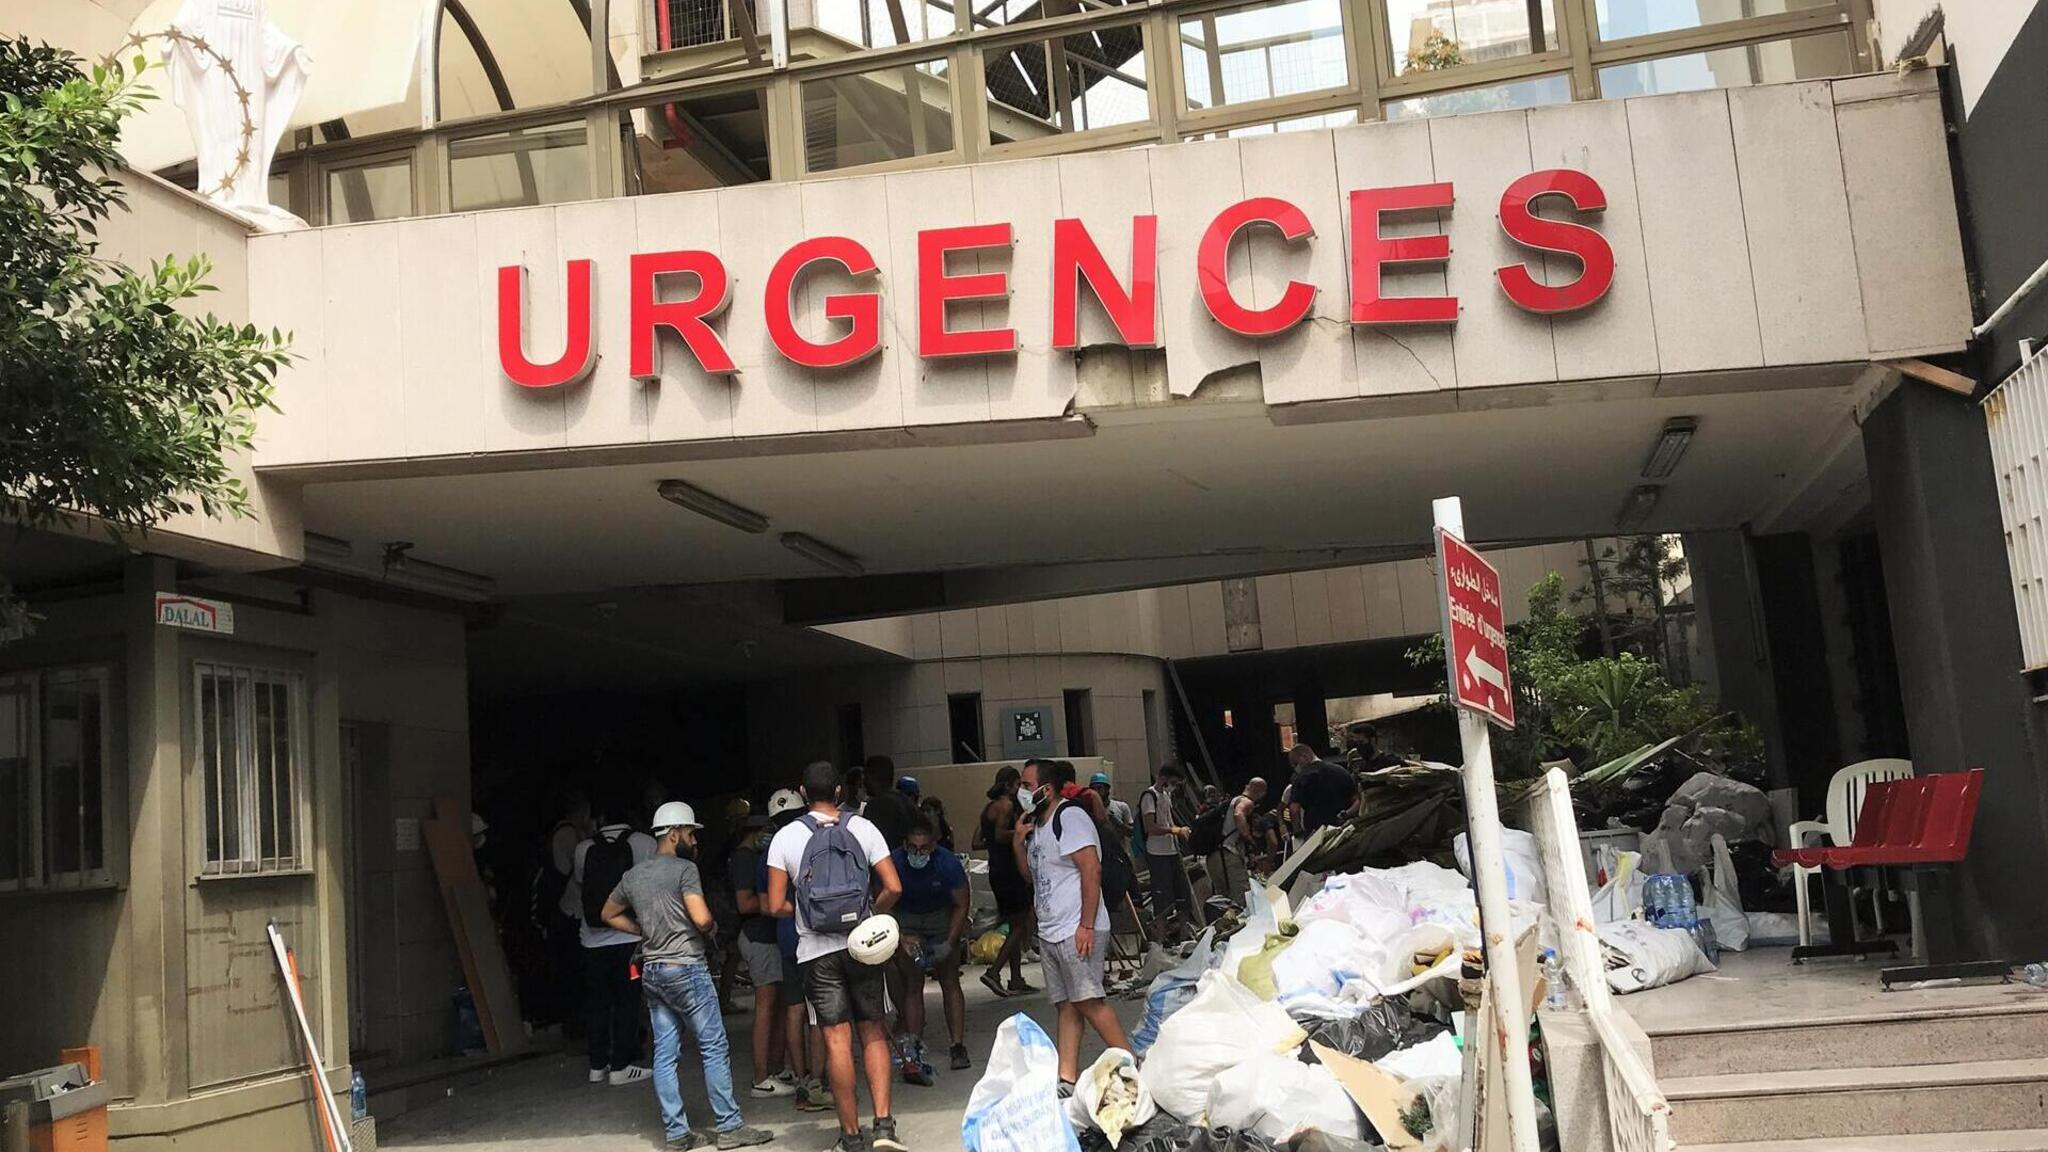 Damaged hospital after Beirut explosion